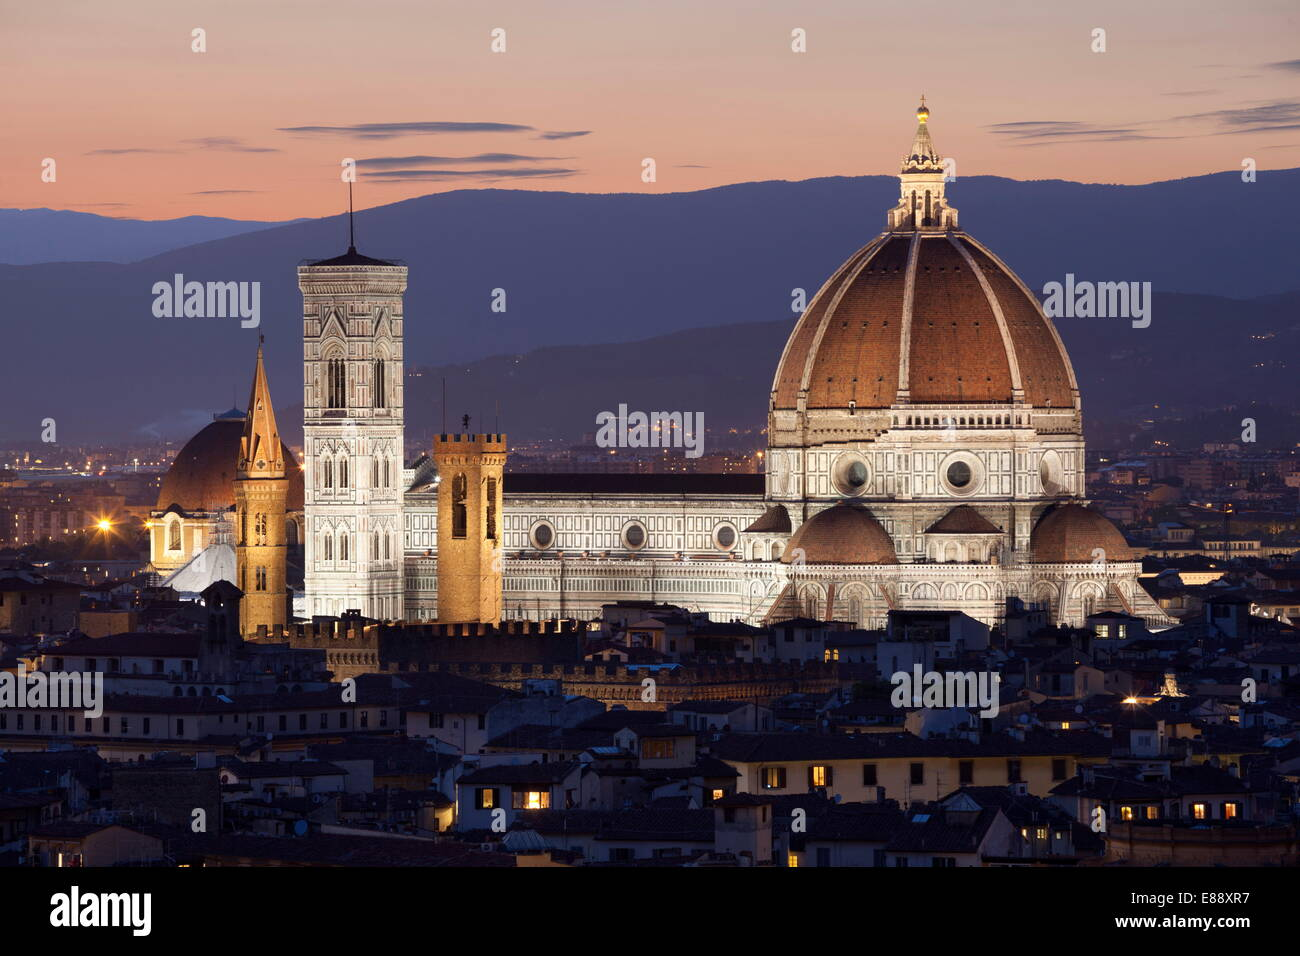 Duomo at night from Piazza Michelangelo, Florence, UNESCO World Heritage Site, Tuscany, Italy, Europe - Stock Image